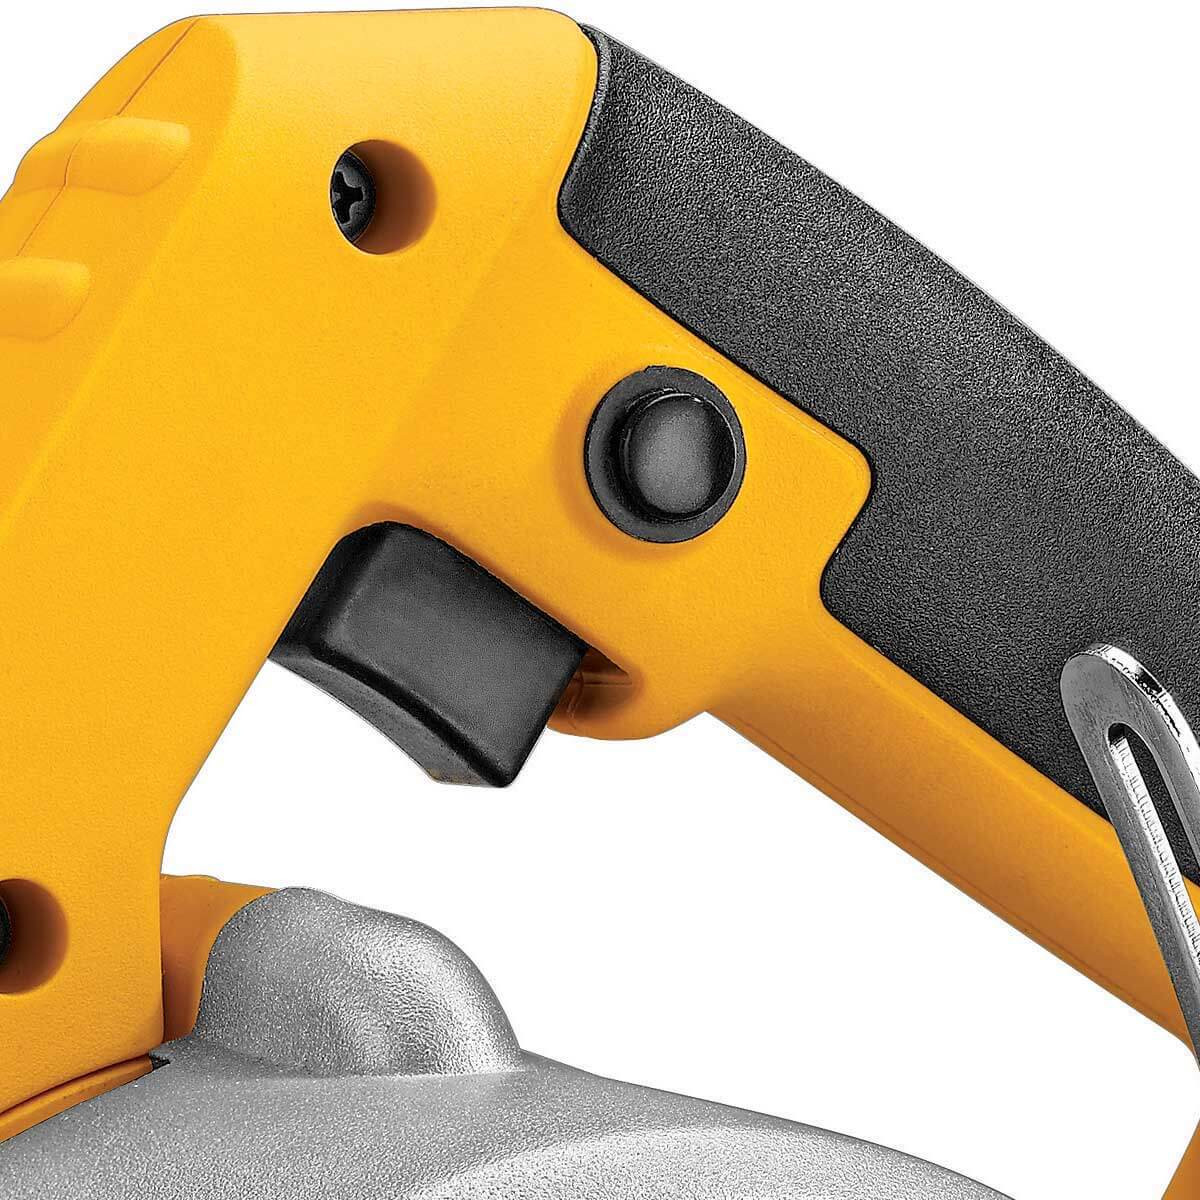 Dewalt DWC860W hand-held tile saw trigger